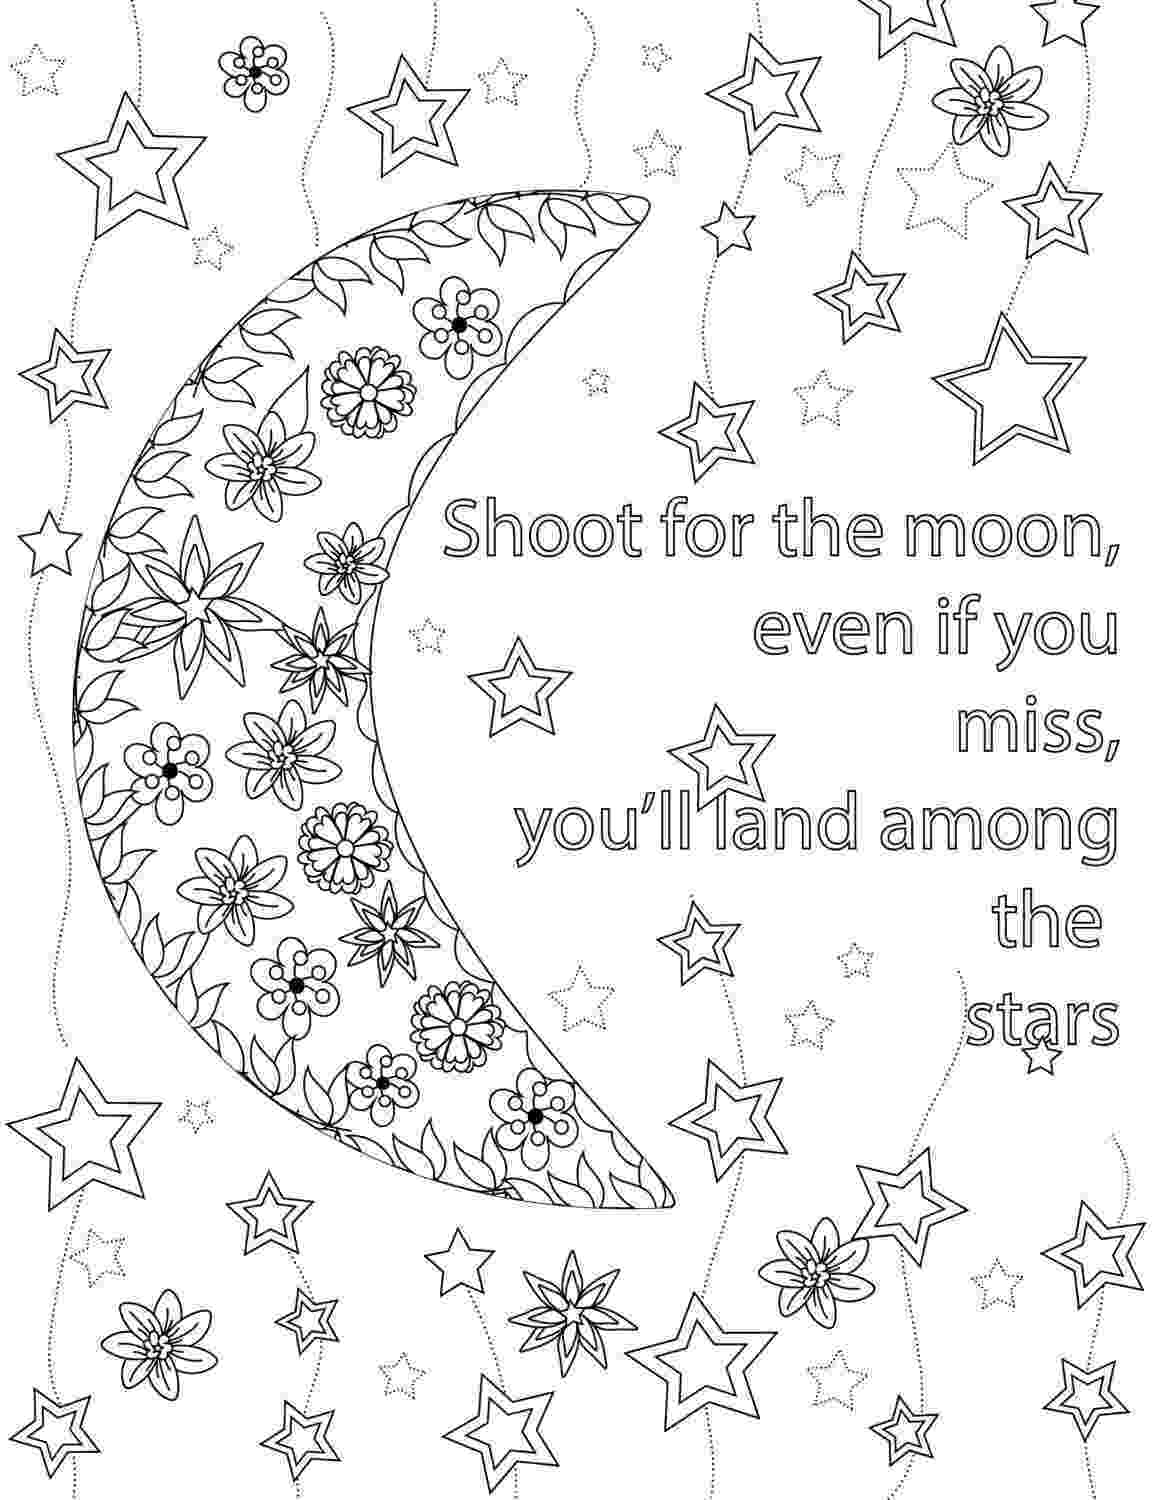 printable coloring quote pages for adults educational quotes coloring pages classroom doodles coloring printable pages adults quote for